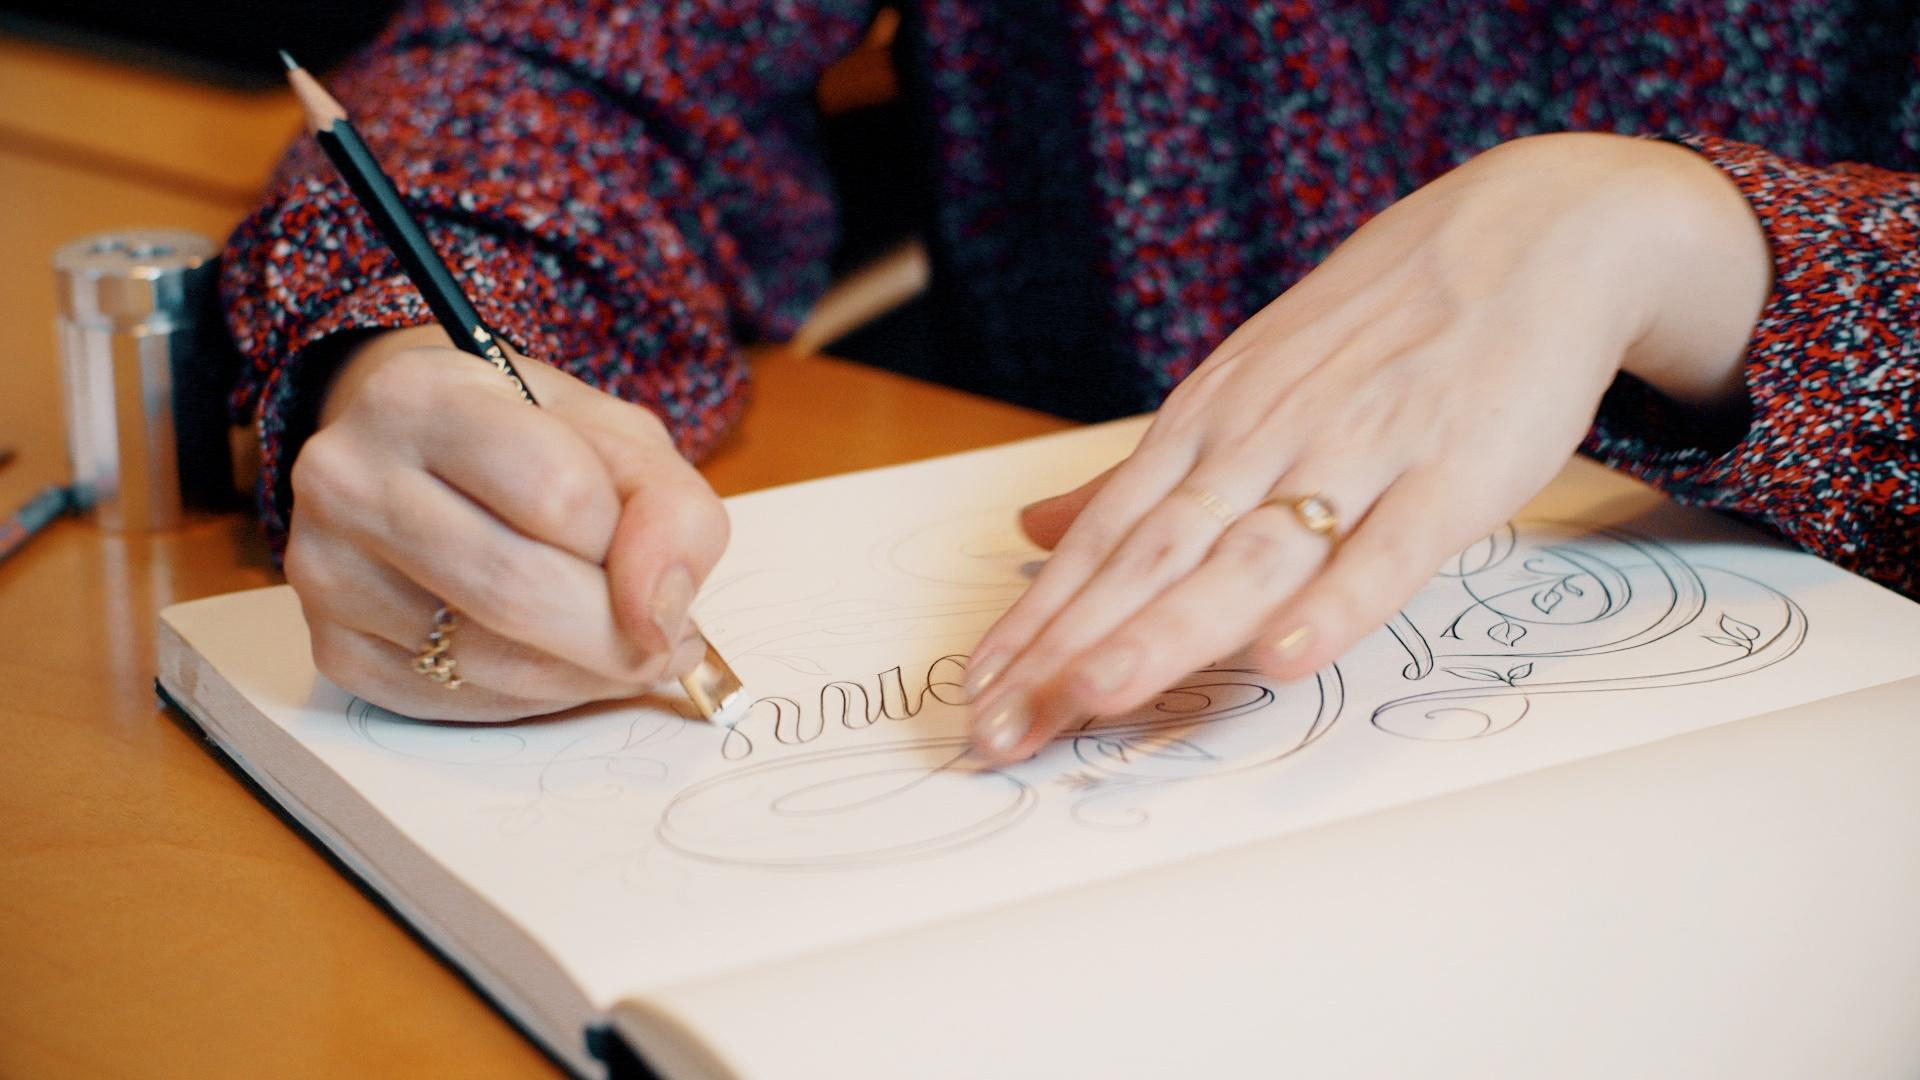 Lettering Artistry with Jessica Hische | KQED Art School | PBS LearningMedia